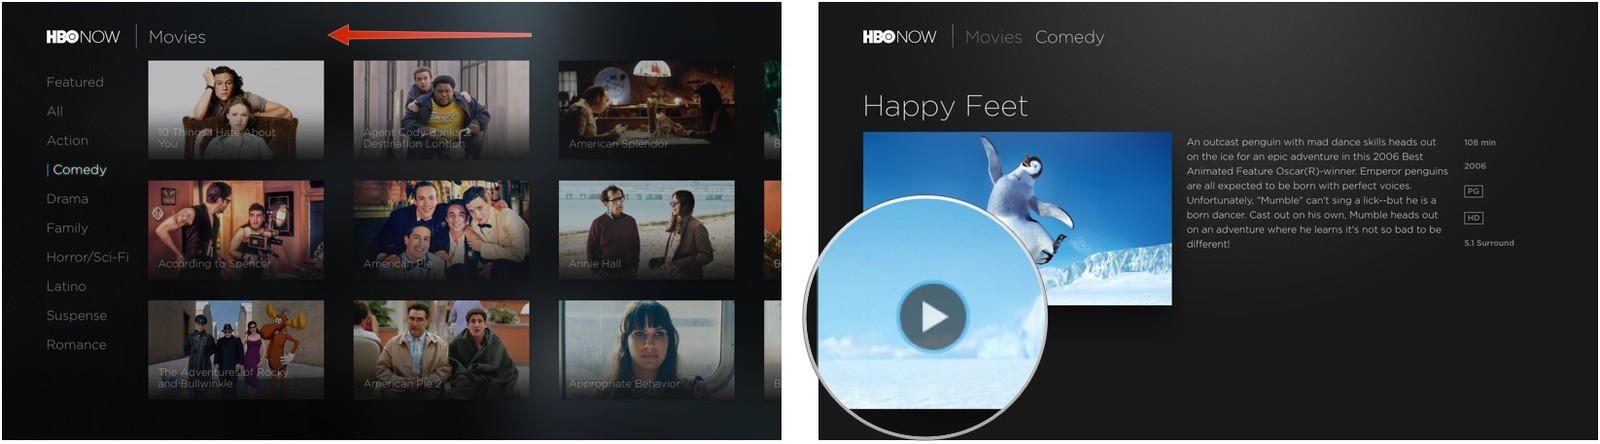 hbo now4